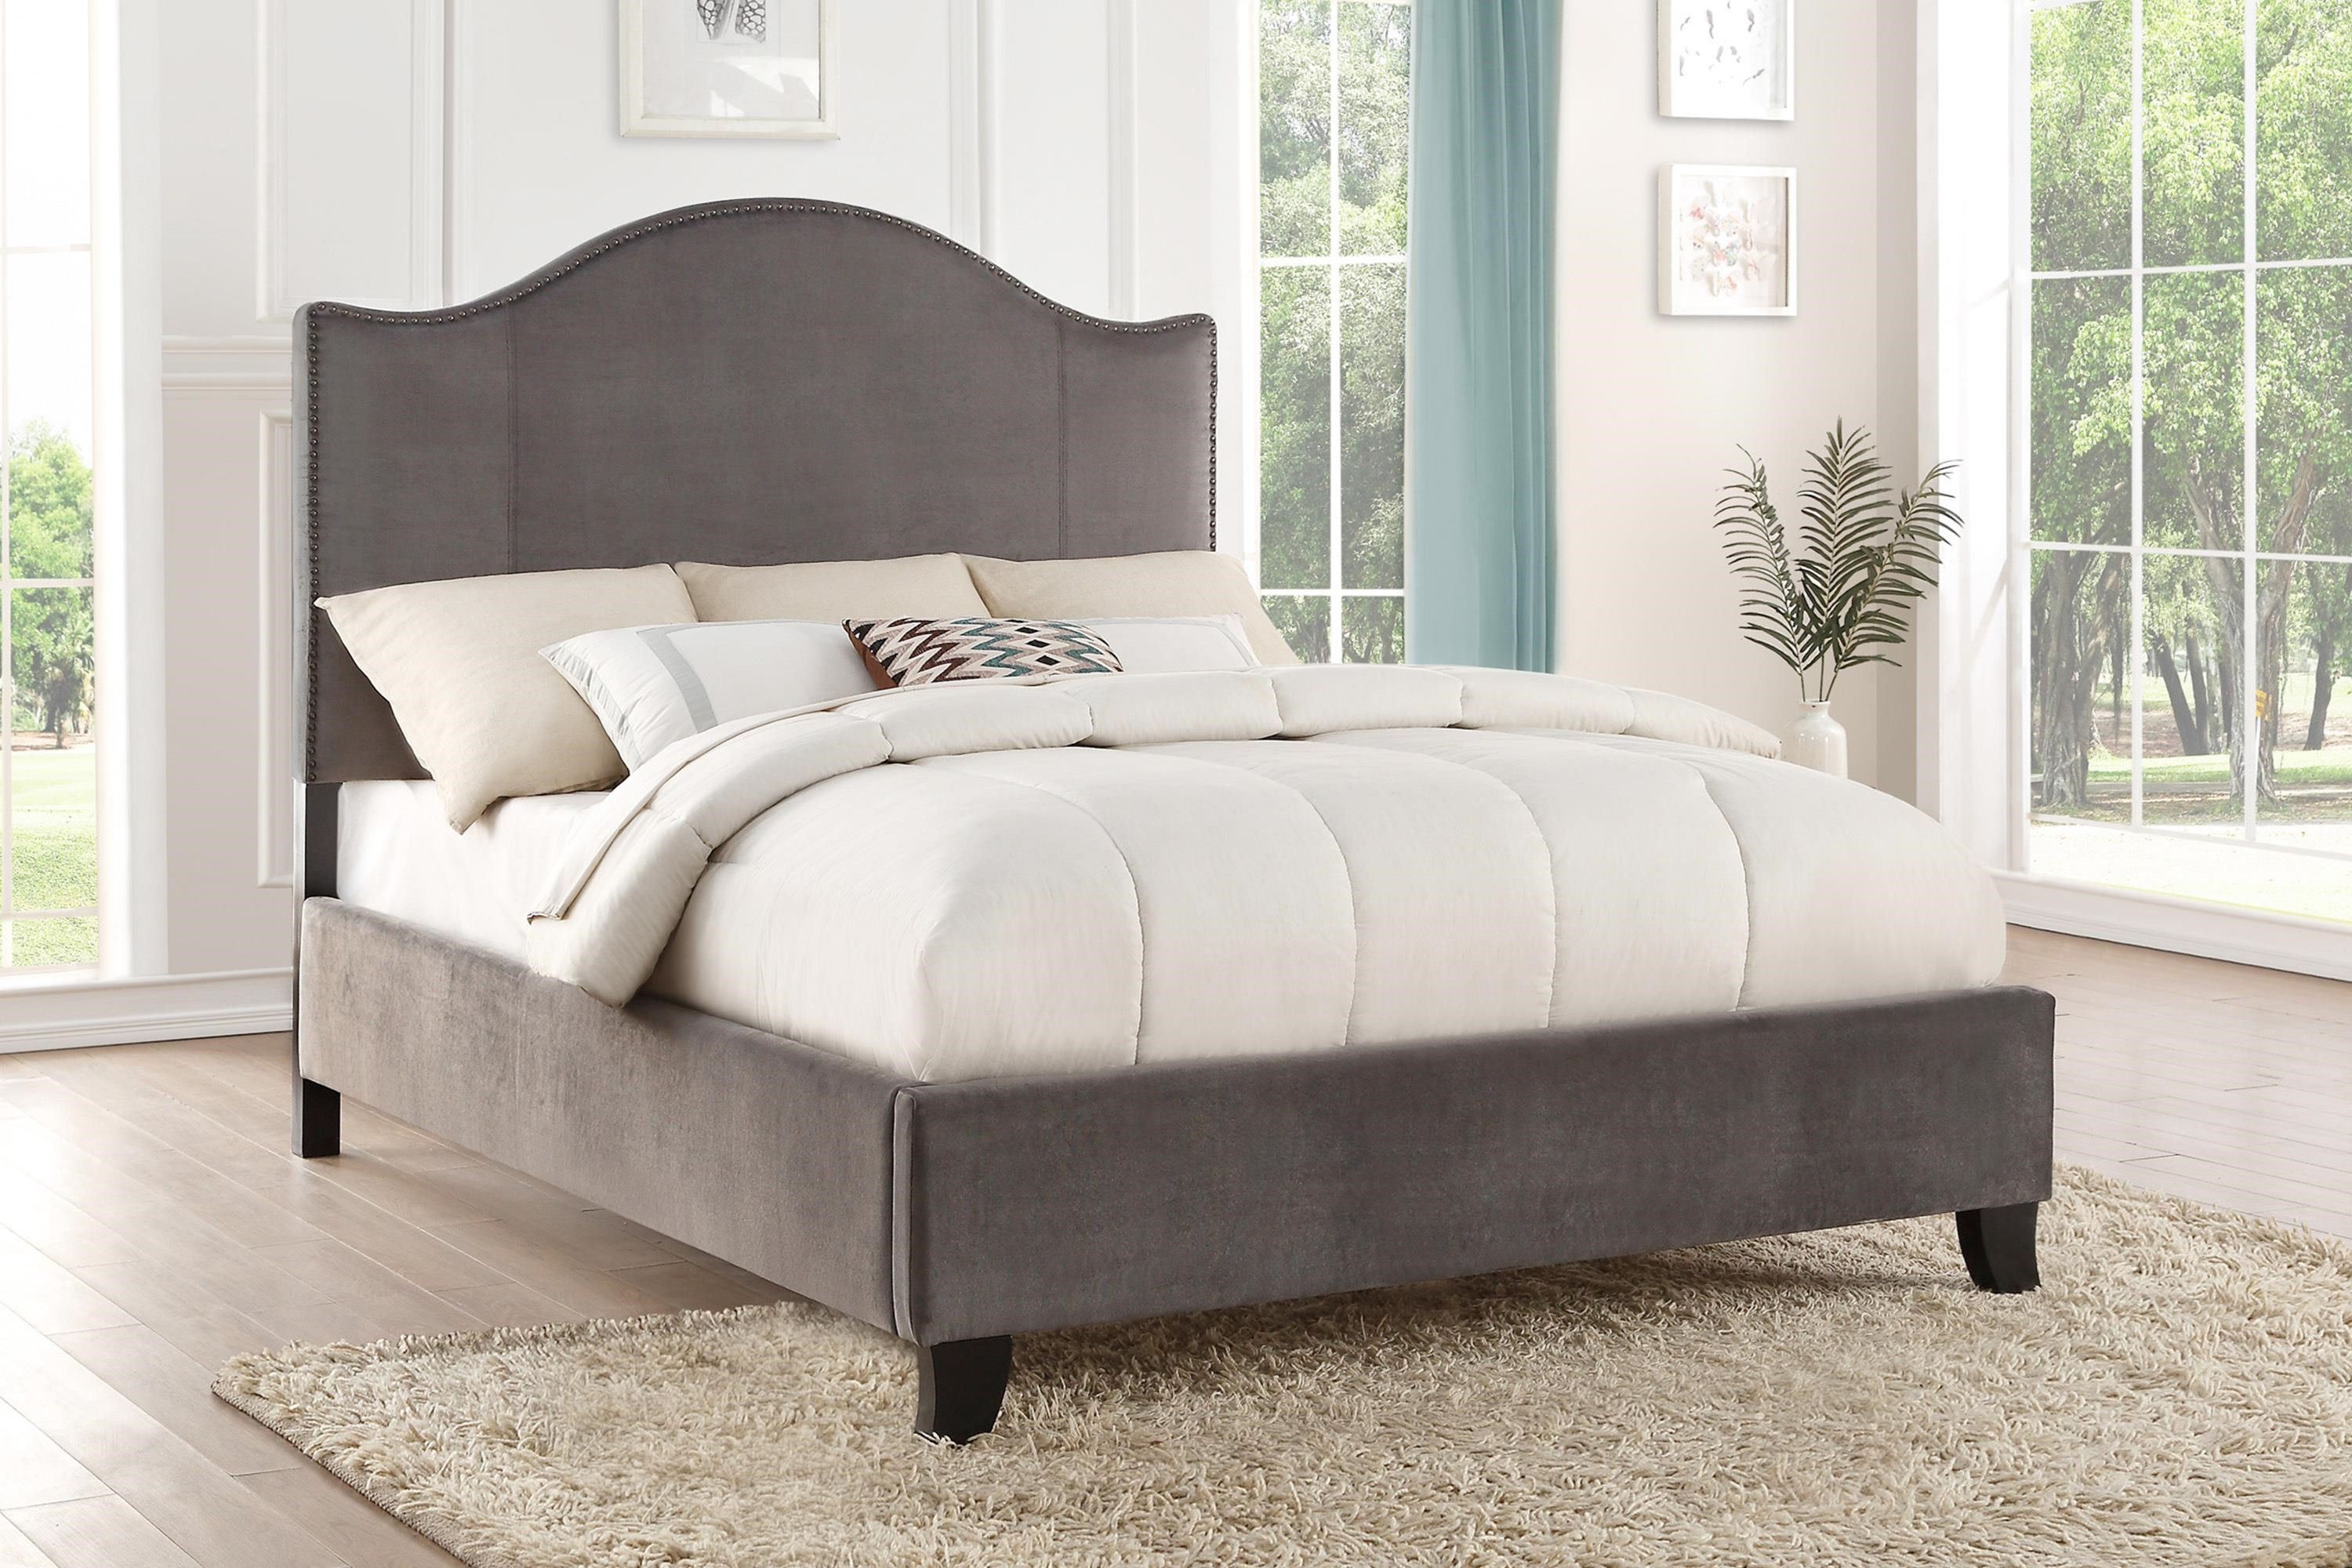 Carlow Full Upholstered Bed by Homelegance at Beck's Furniture